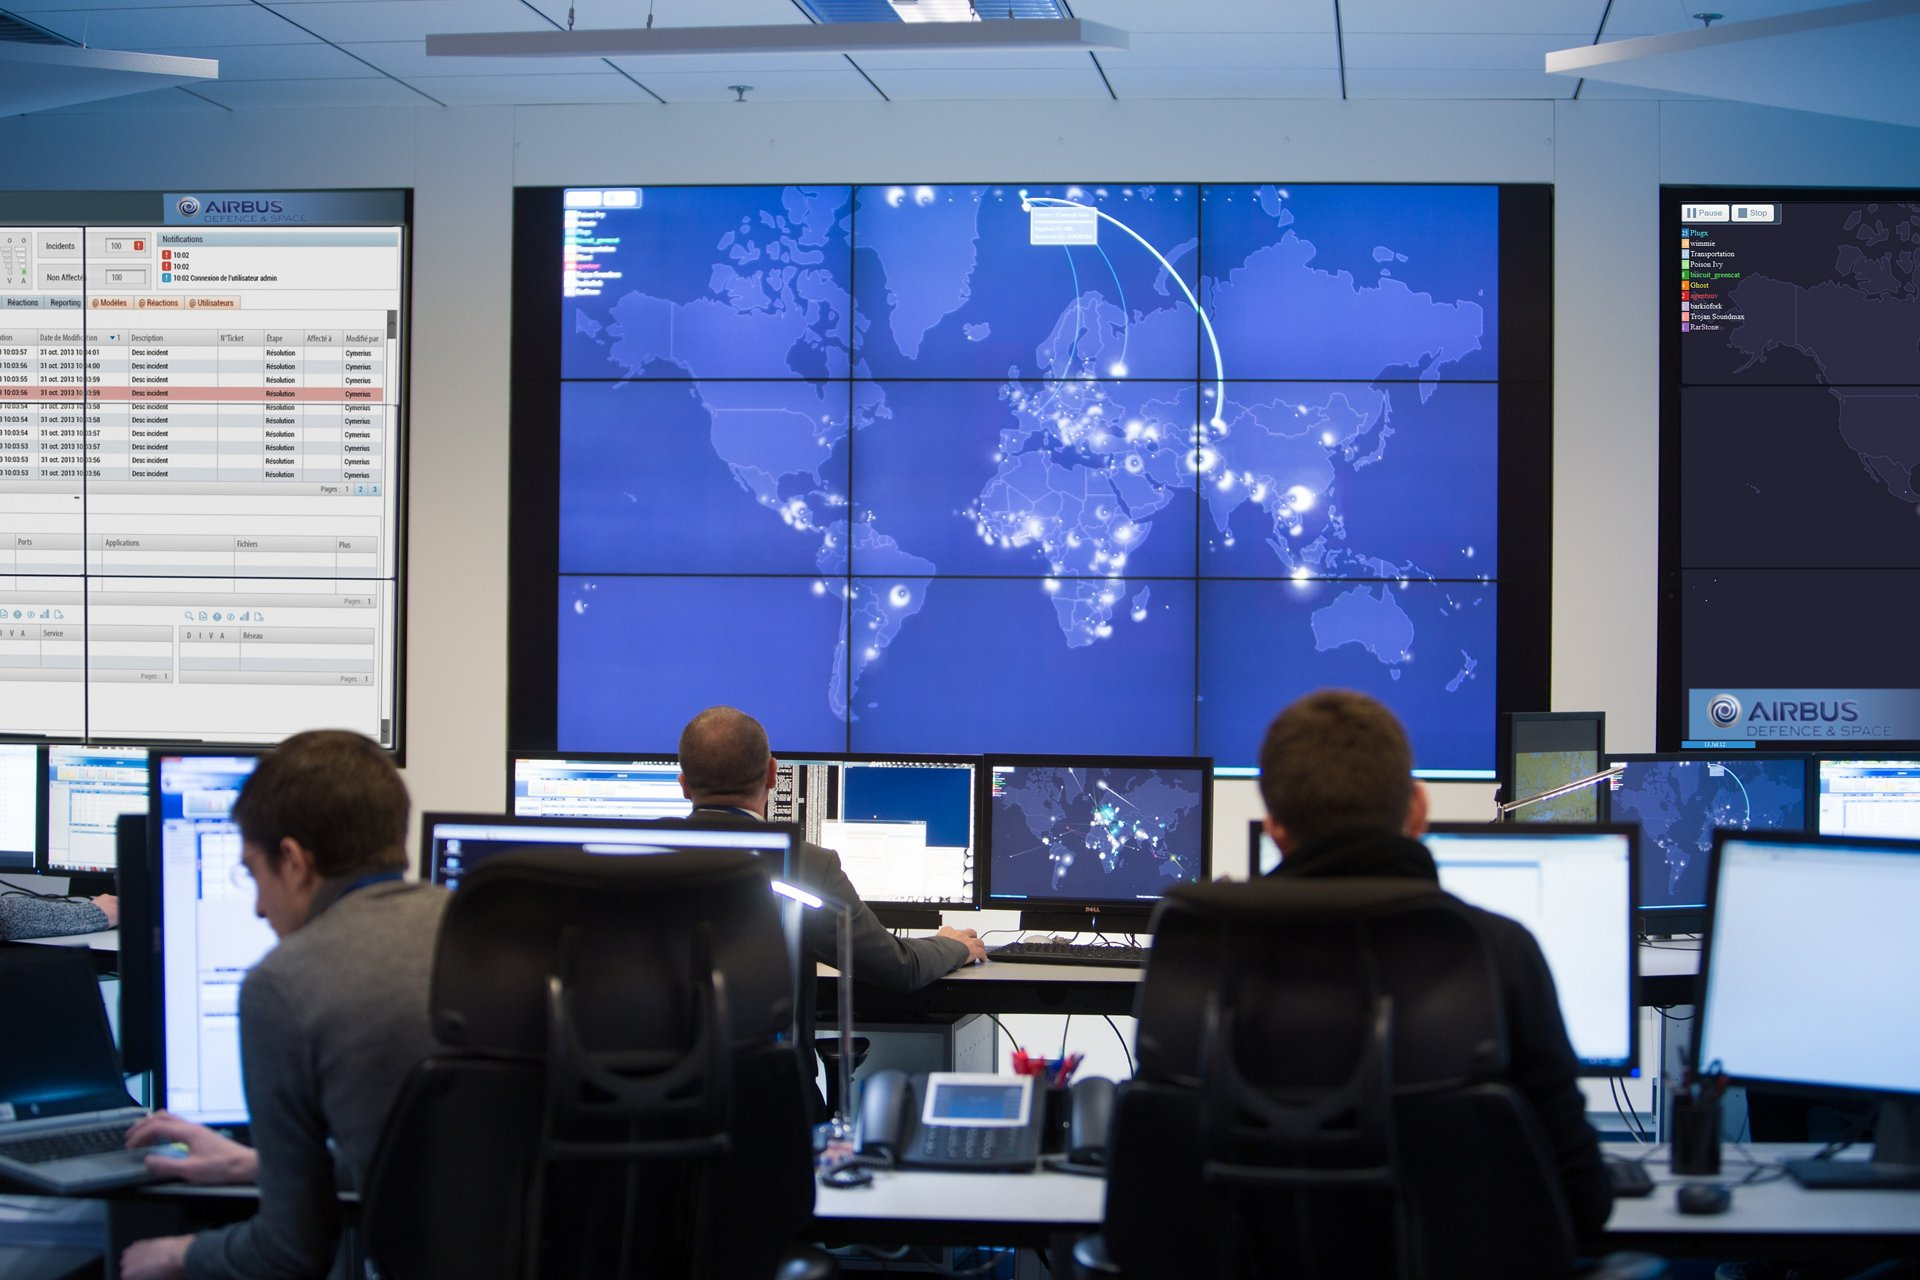 A view of personnel and systems in a border security command and control centre.